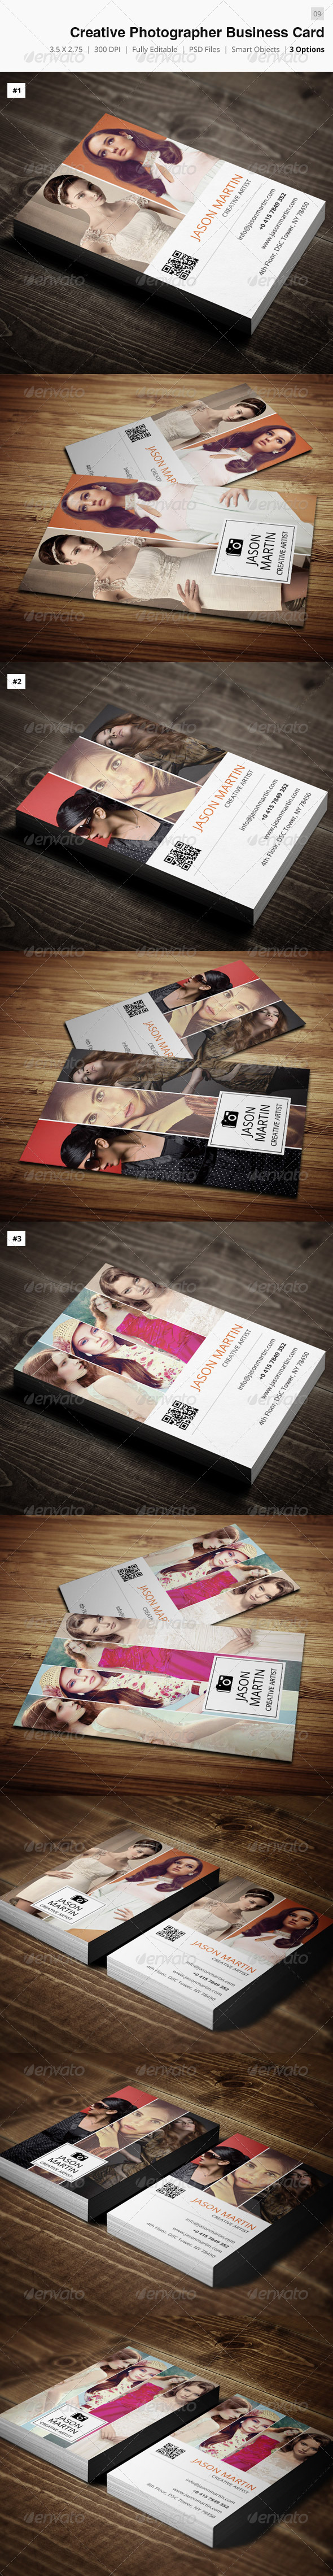 GraphicRiver Creative Photographer Business Card 09 4331360